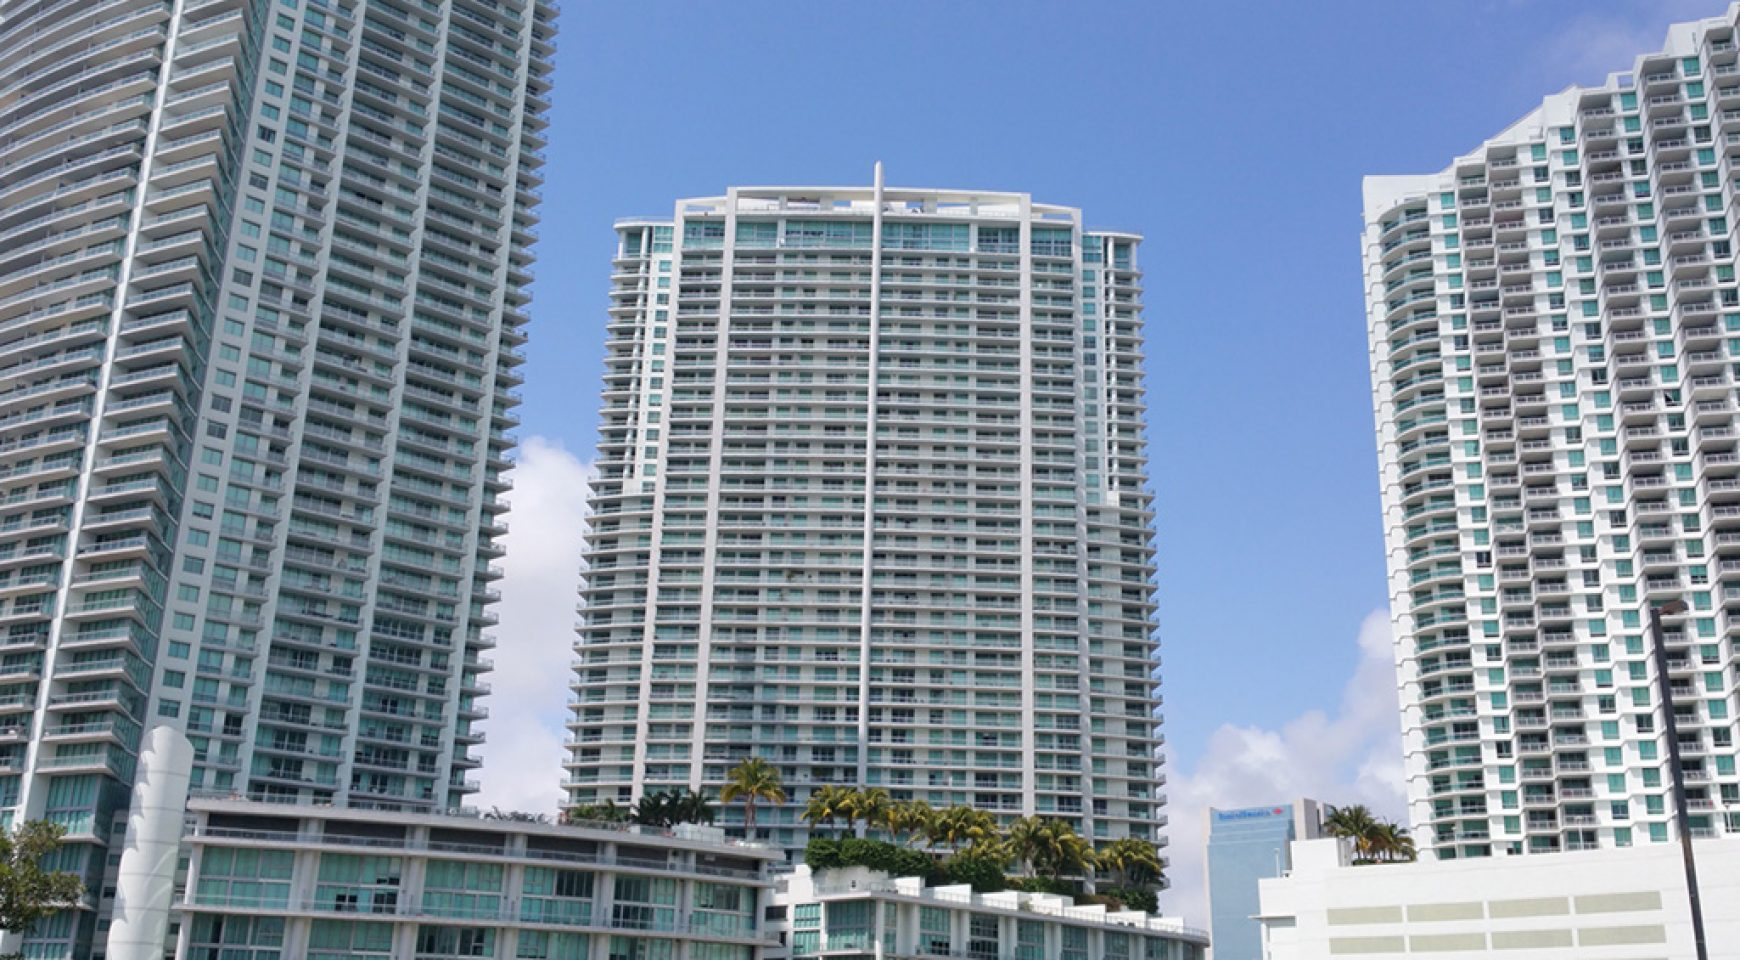 Condo for sale in downtown miami golod group